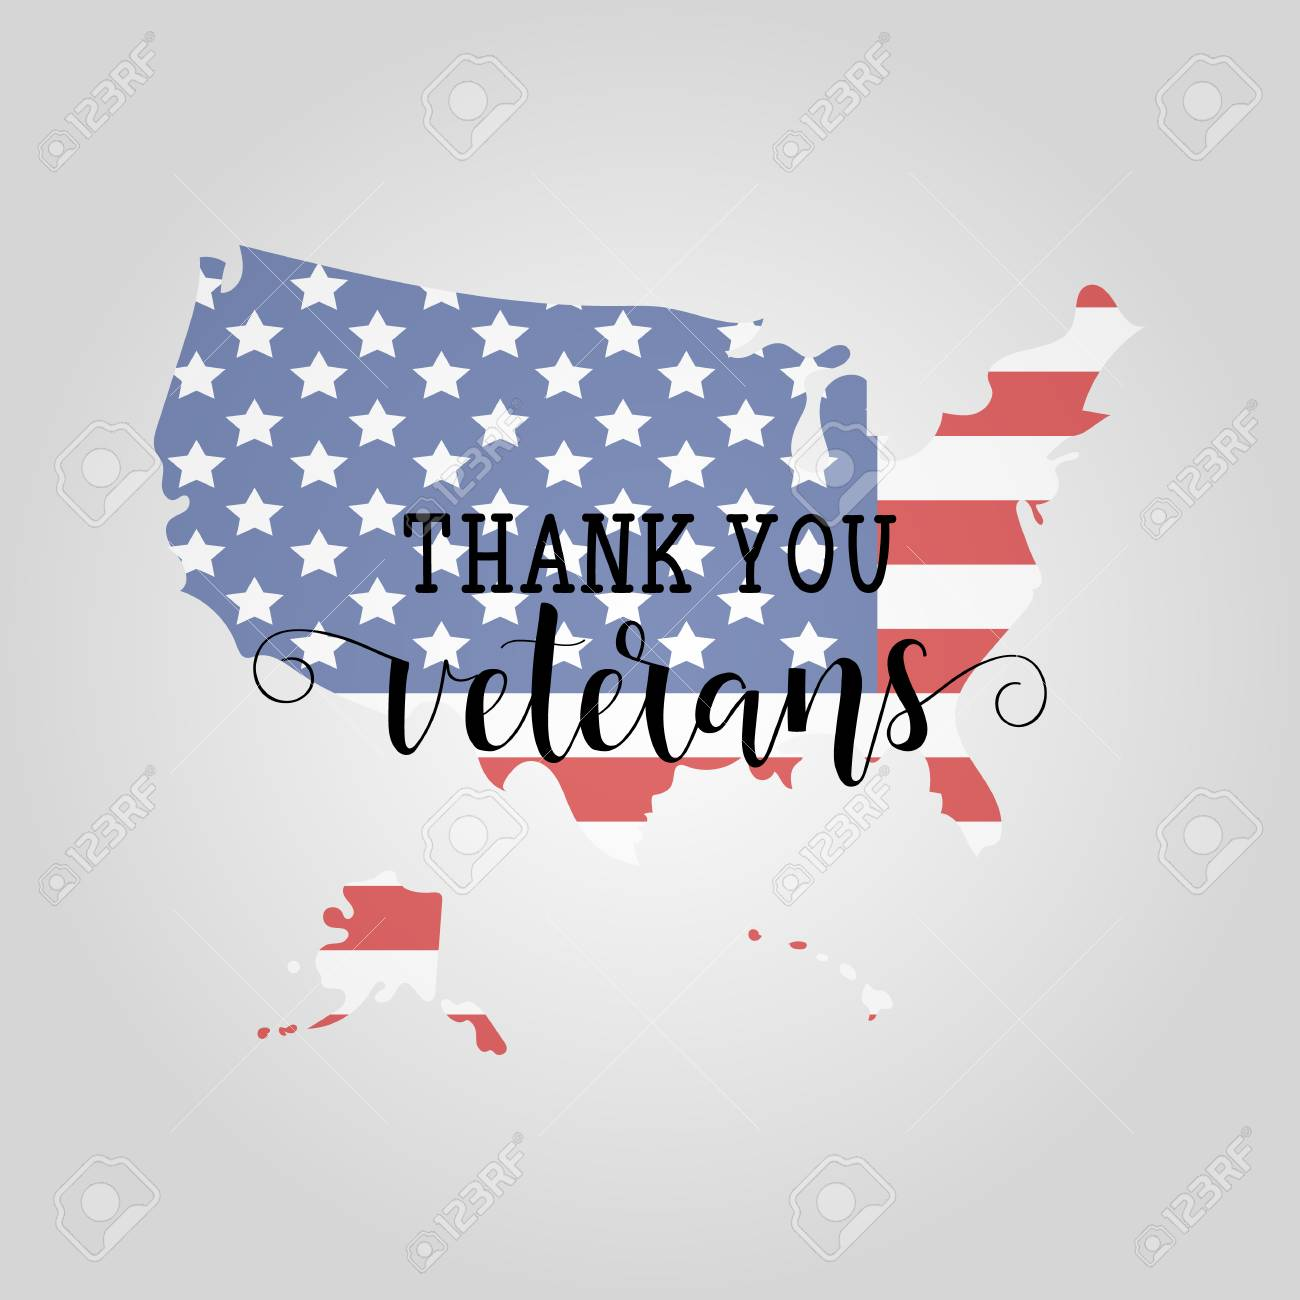 dress - Veterans you Thank banner pictures video